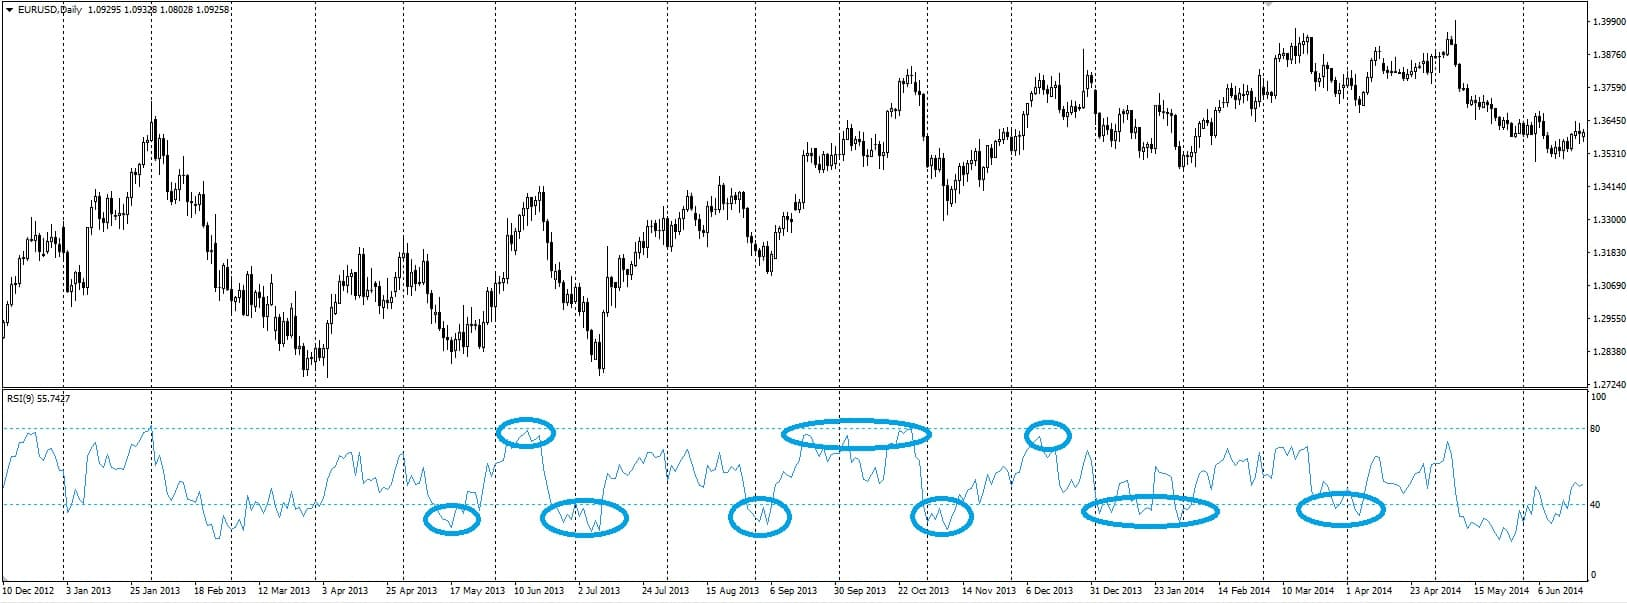 40 and 60 RSI levels